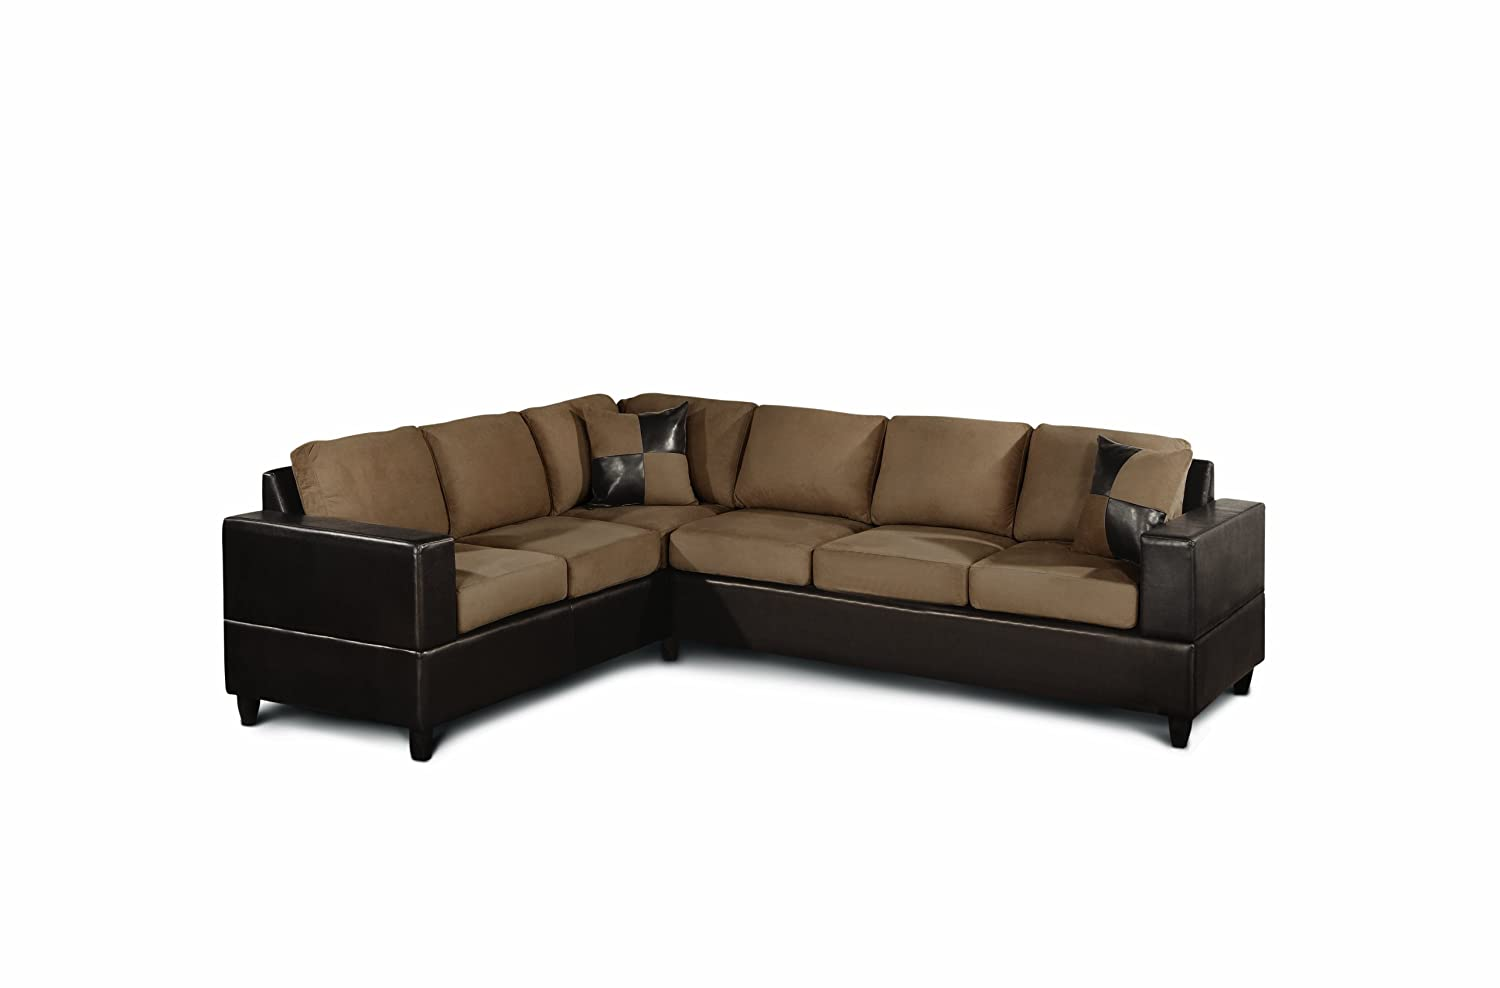 S Shaped Loveseat Home Design